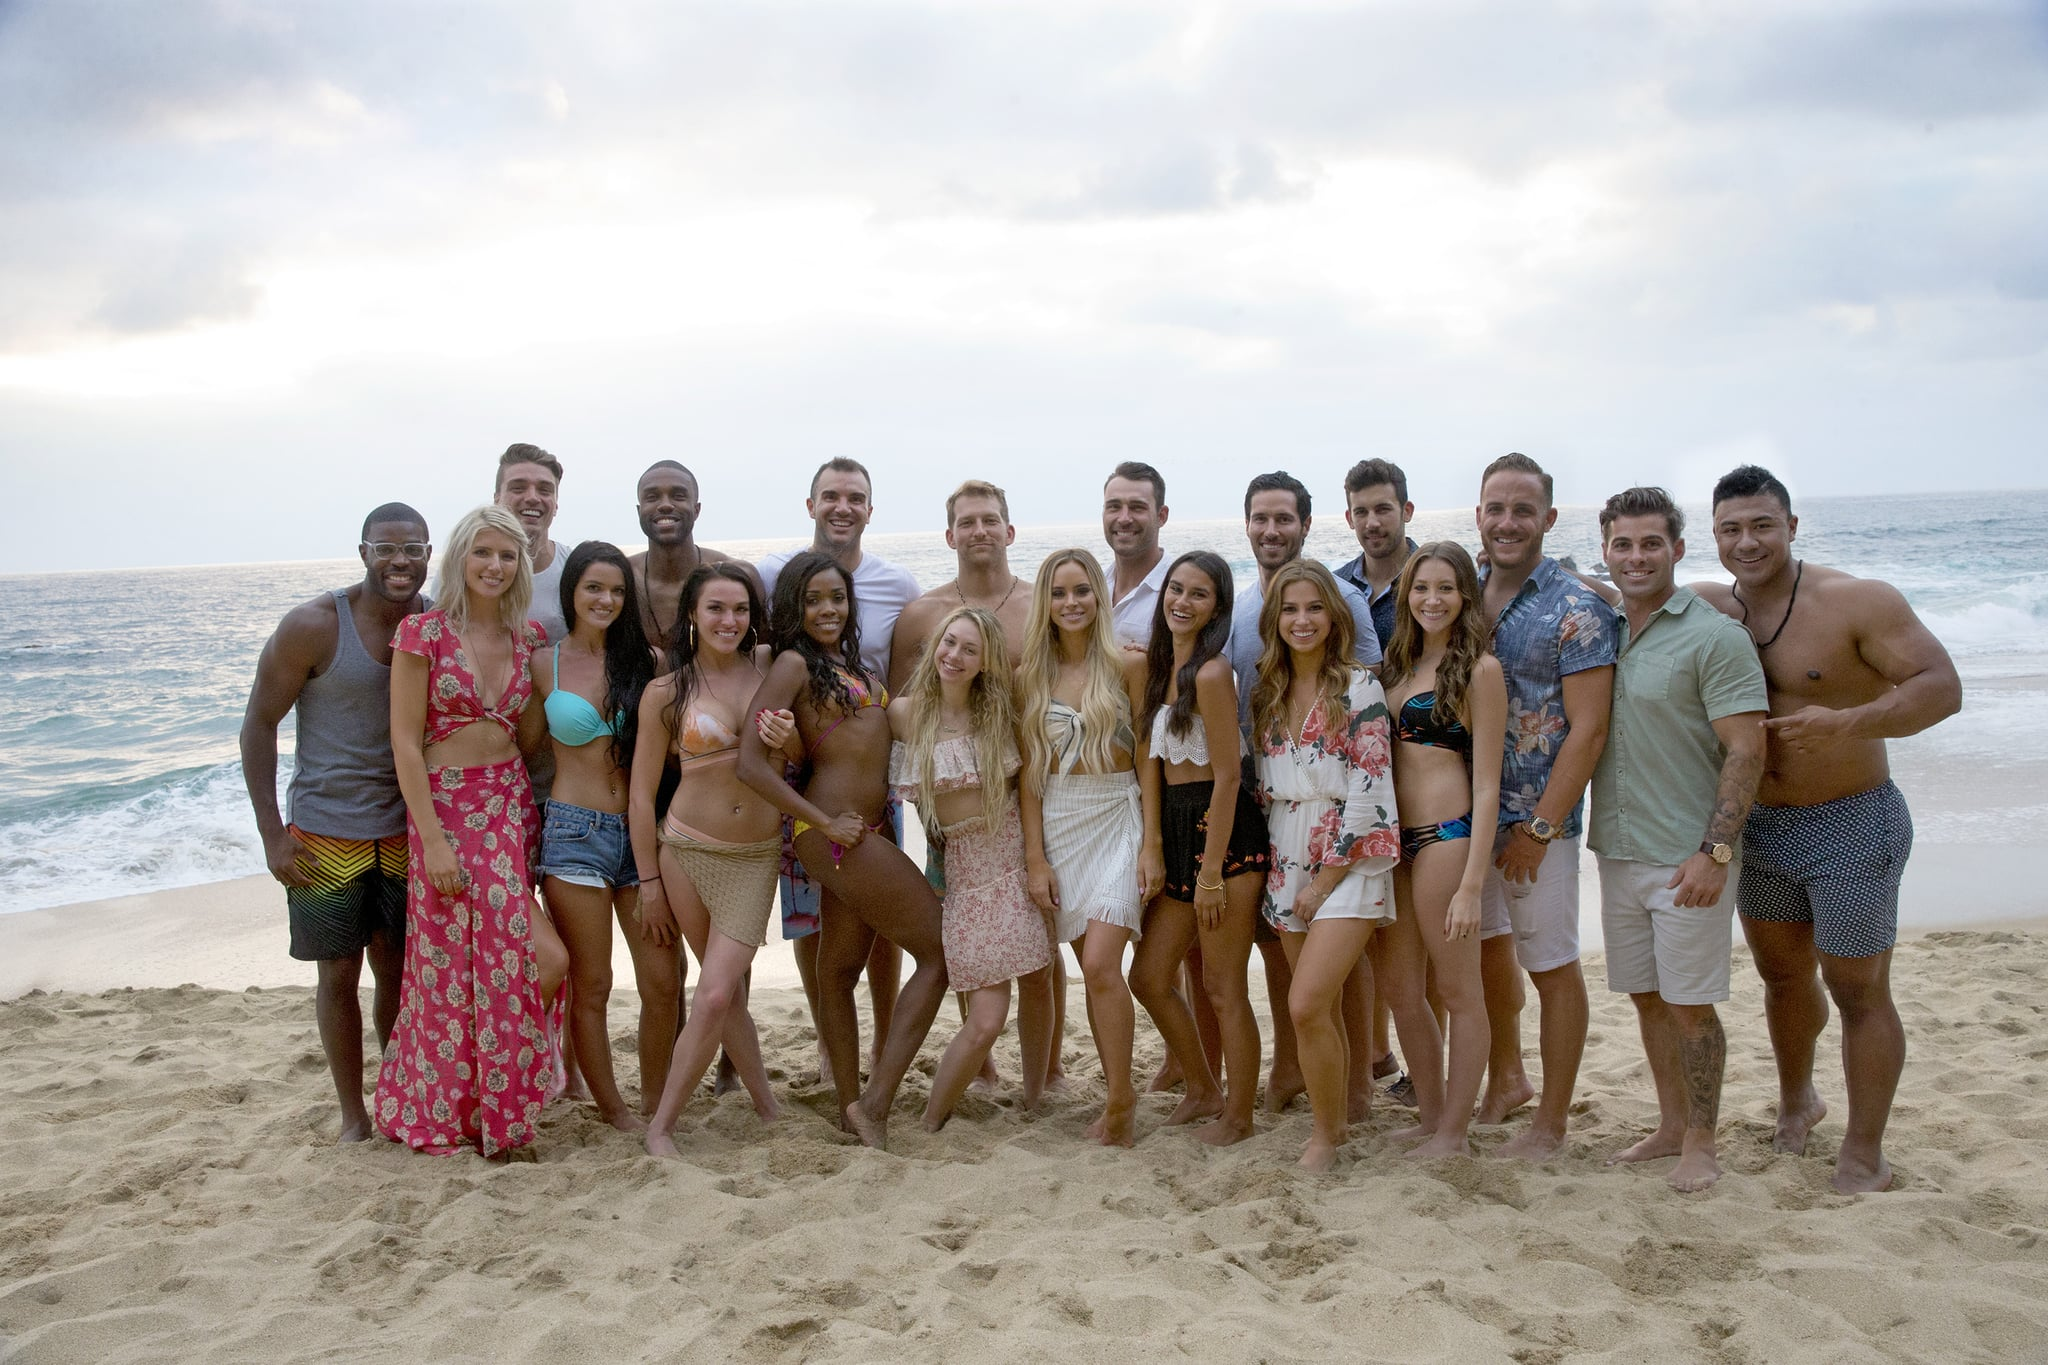 BACHELOR IN PARADISE - (Paul Hebert/ABC via Getty Images)